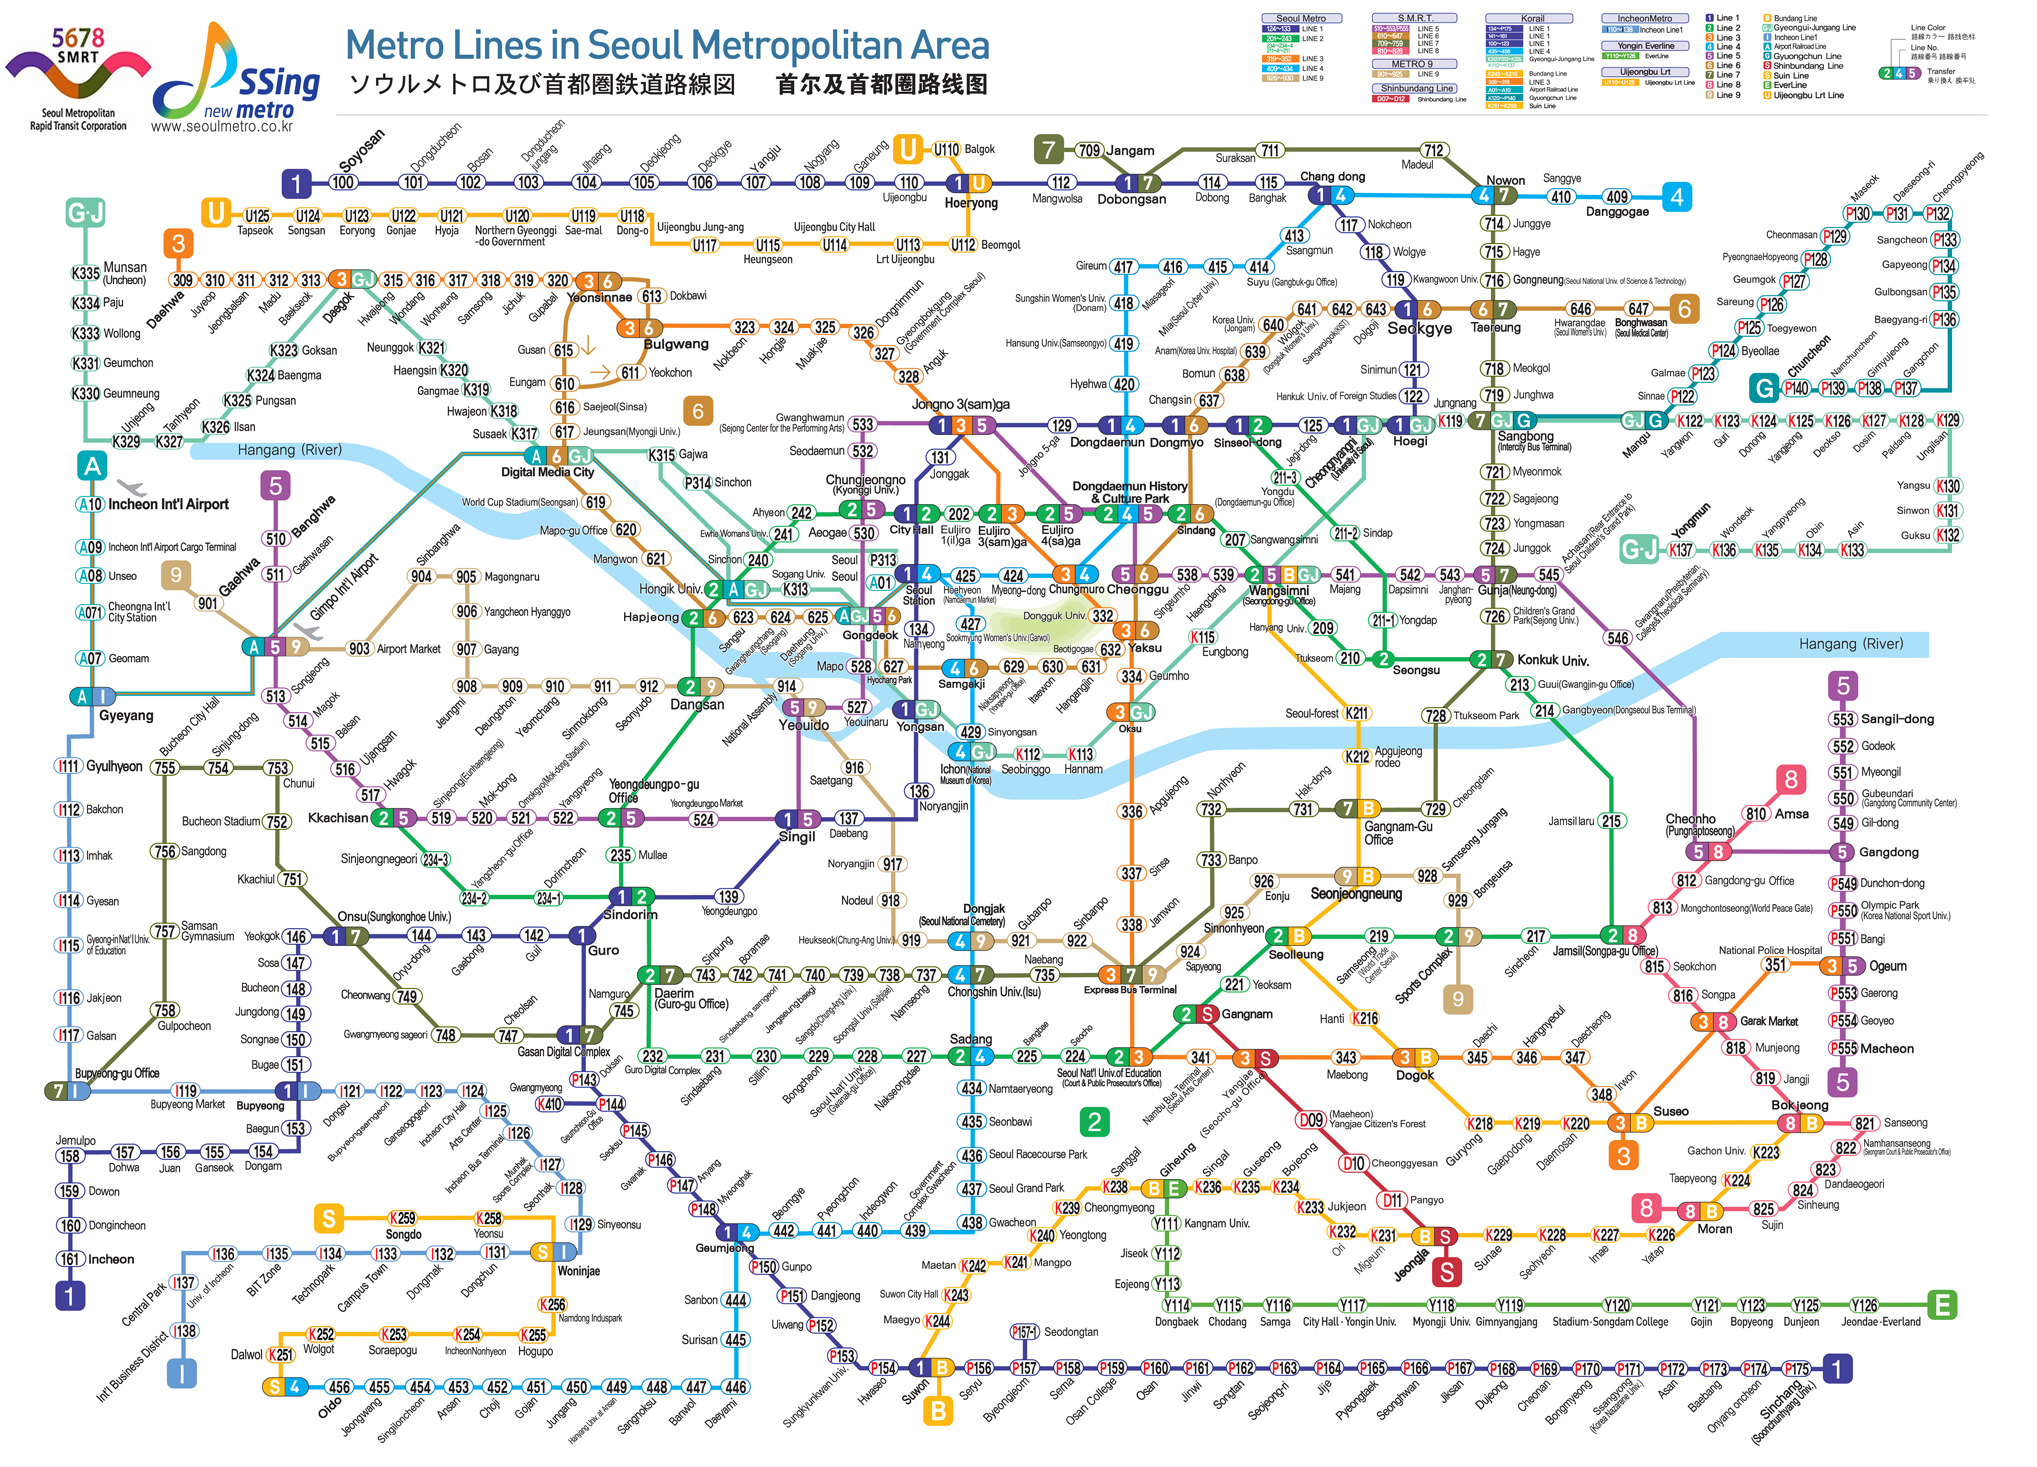 Ansan Seoul Subway Map.South Korean Subway Lines Seoul Metro Busan Daegu Gwangju